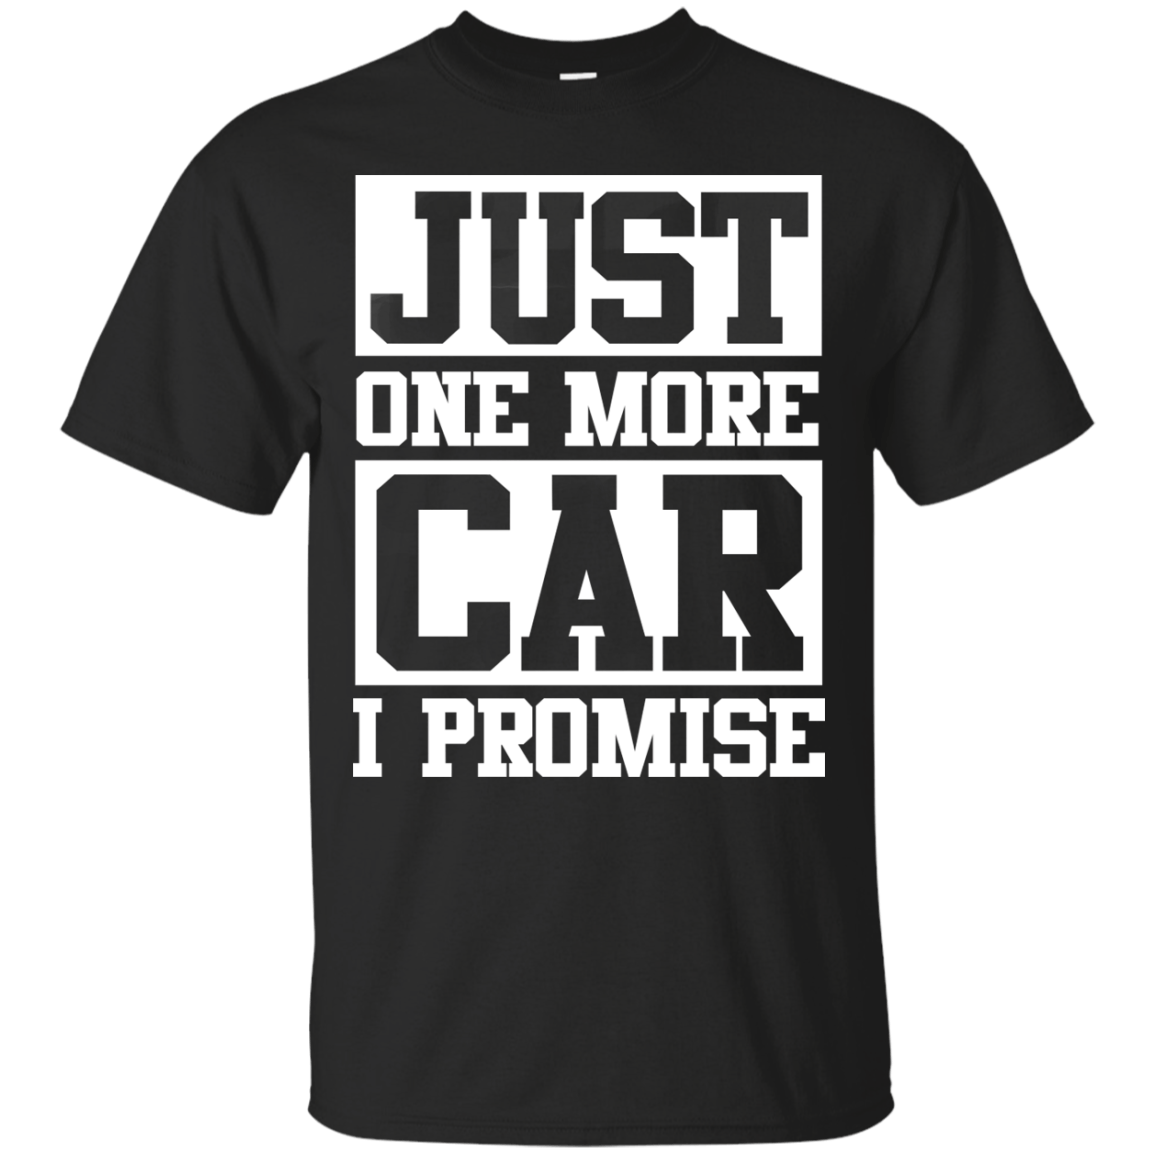 Just one more car I promise t shirt & hoodies, funny tee